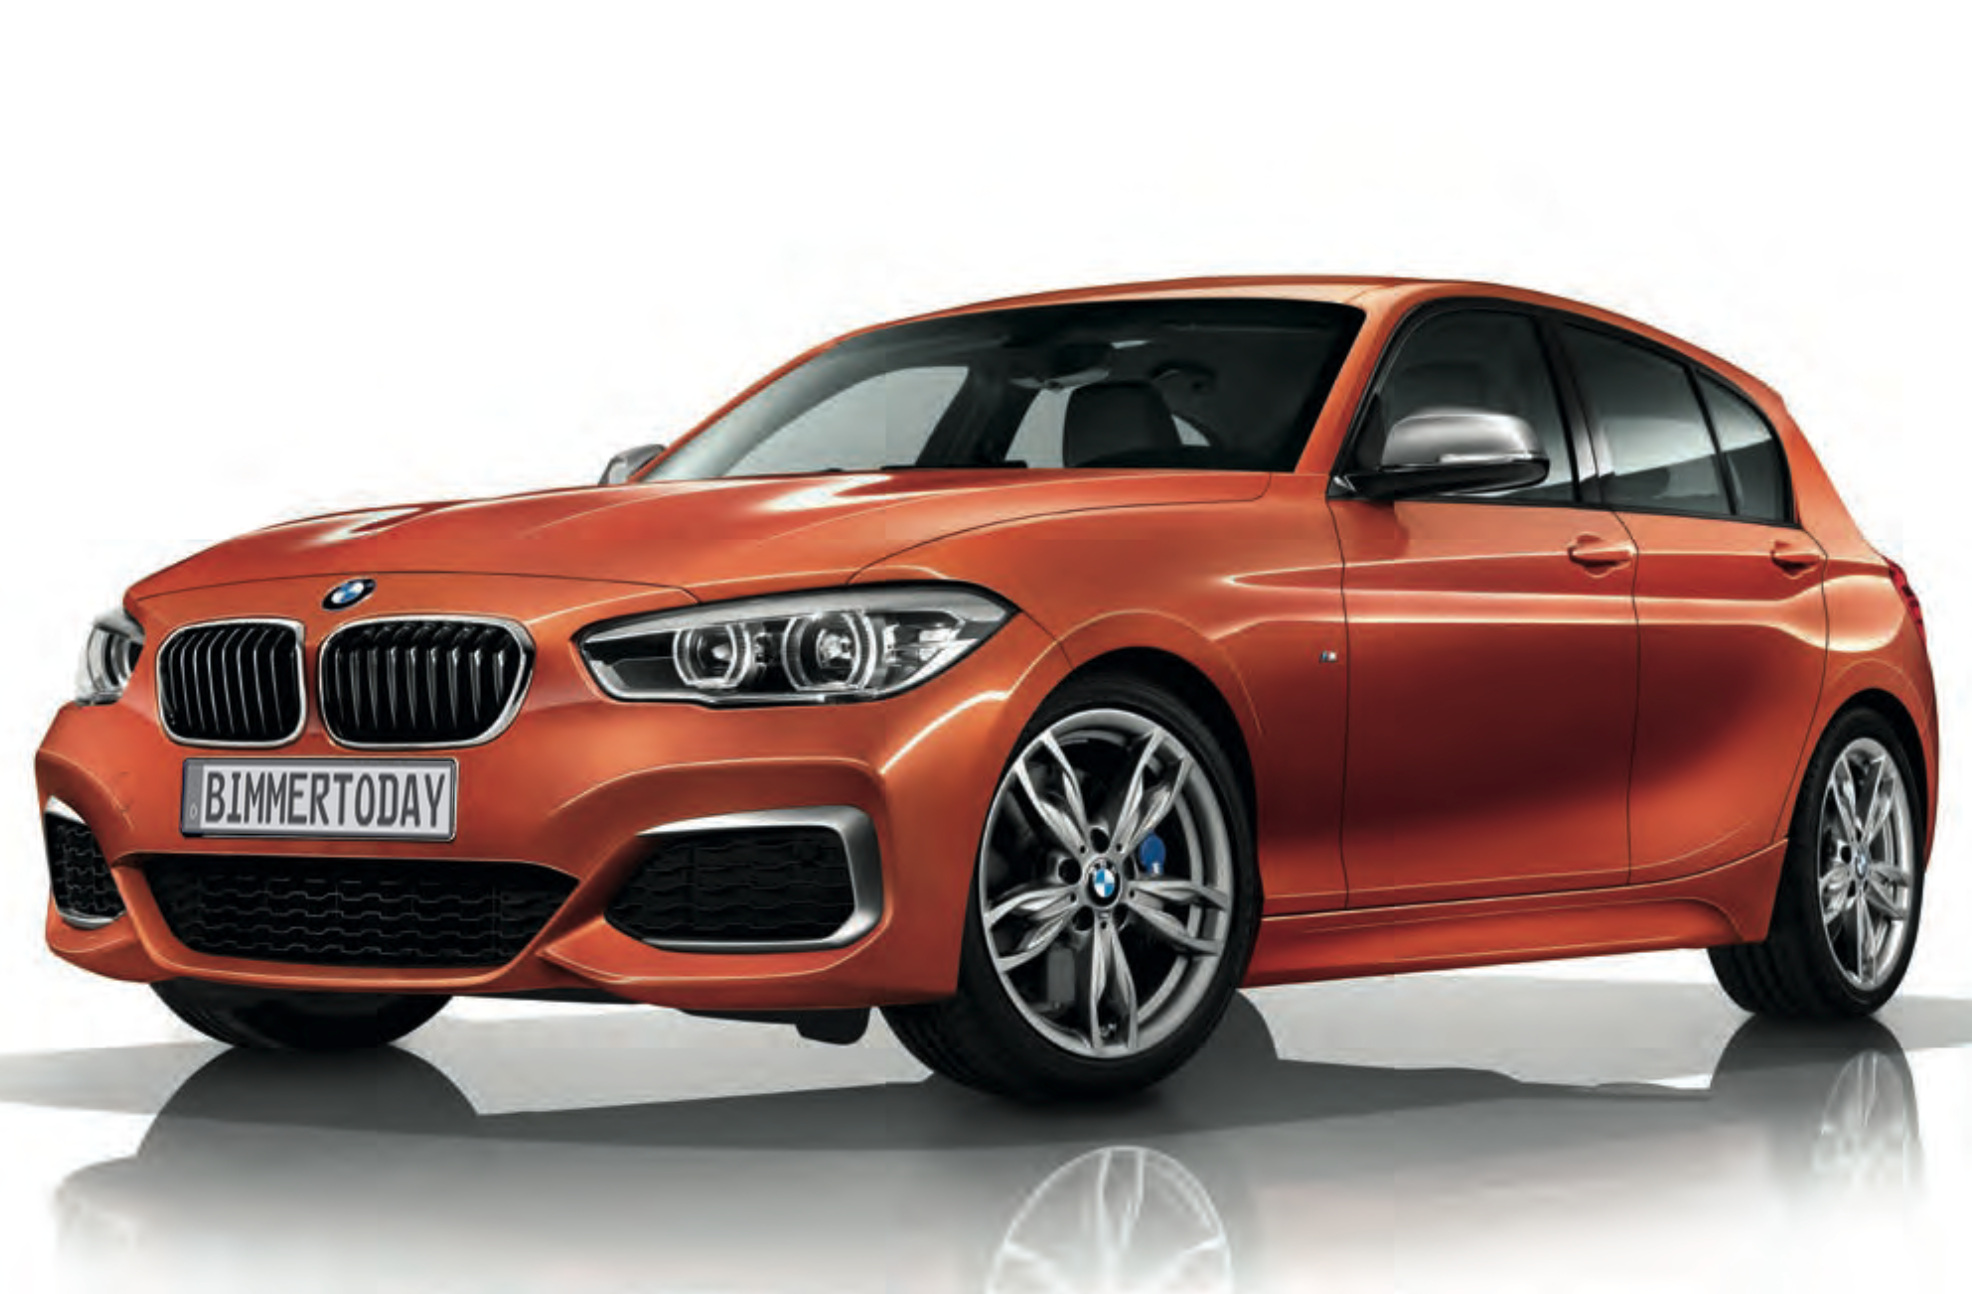 2015 Bmw M135i Looks Great In Valencia Orange